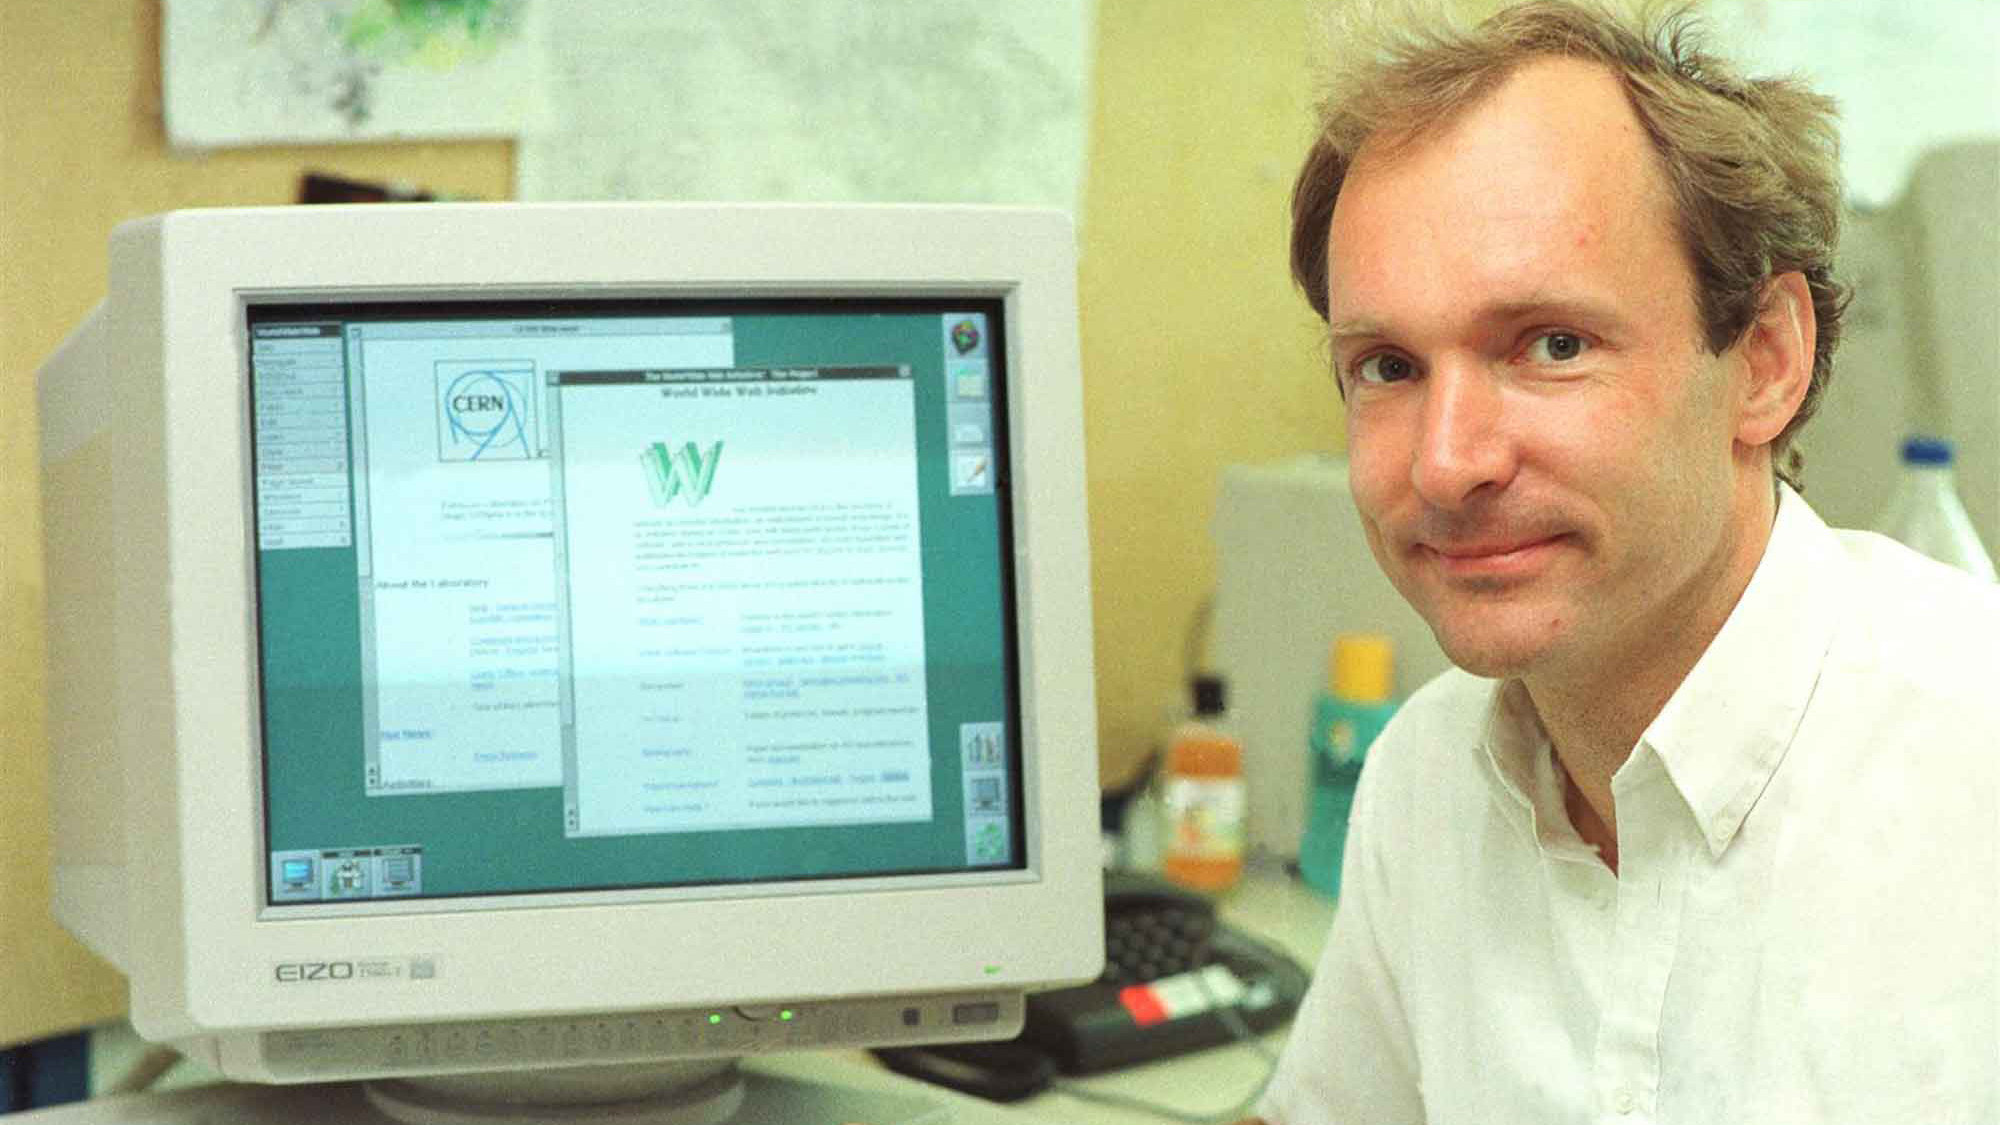 1989-1991 — Sir Tim Berners-Lee invented the World Wide Web